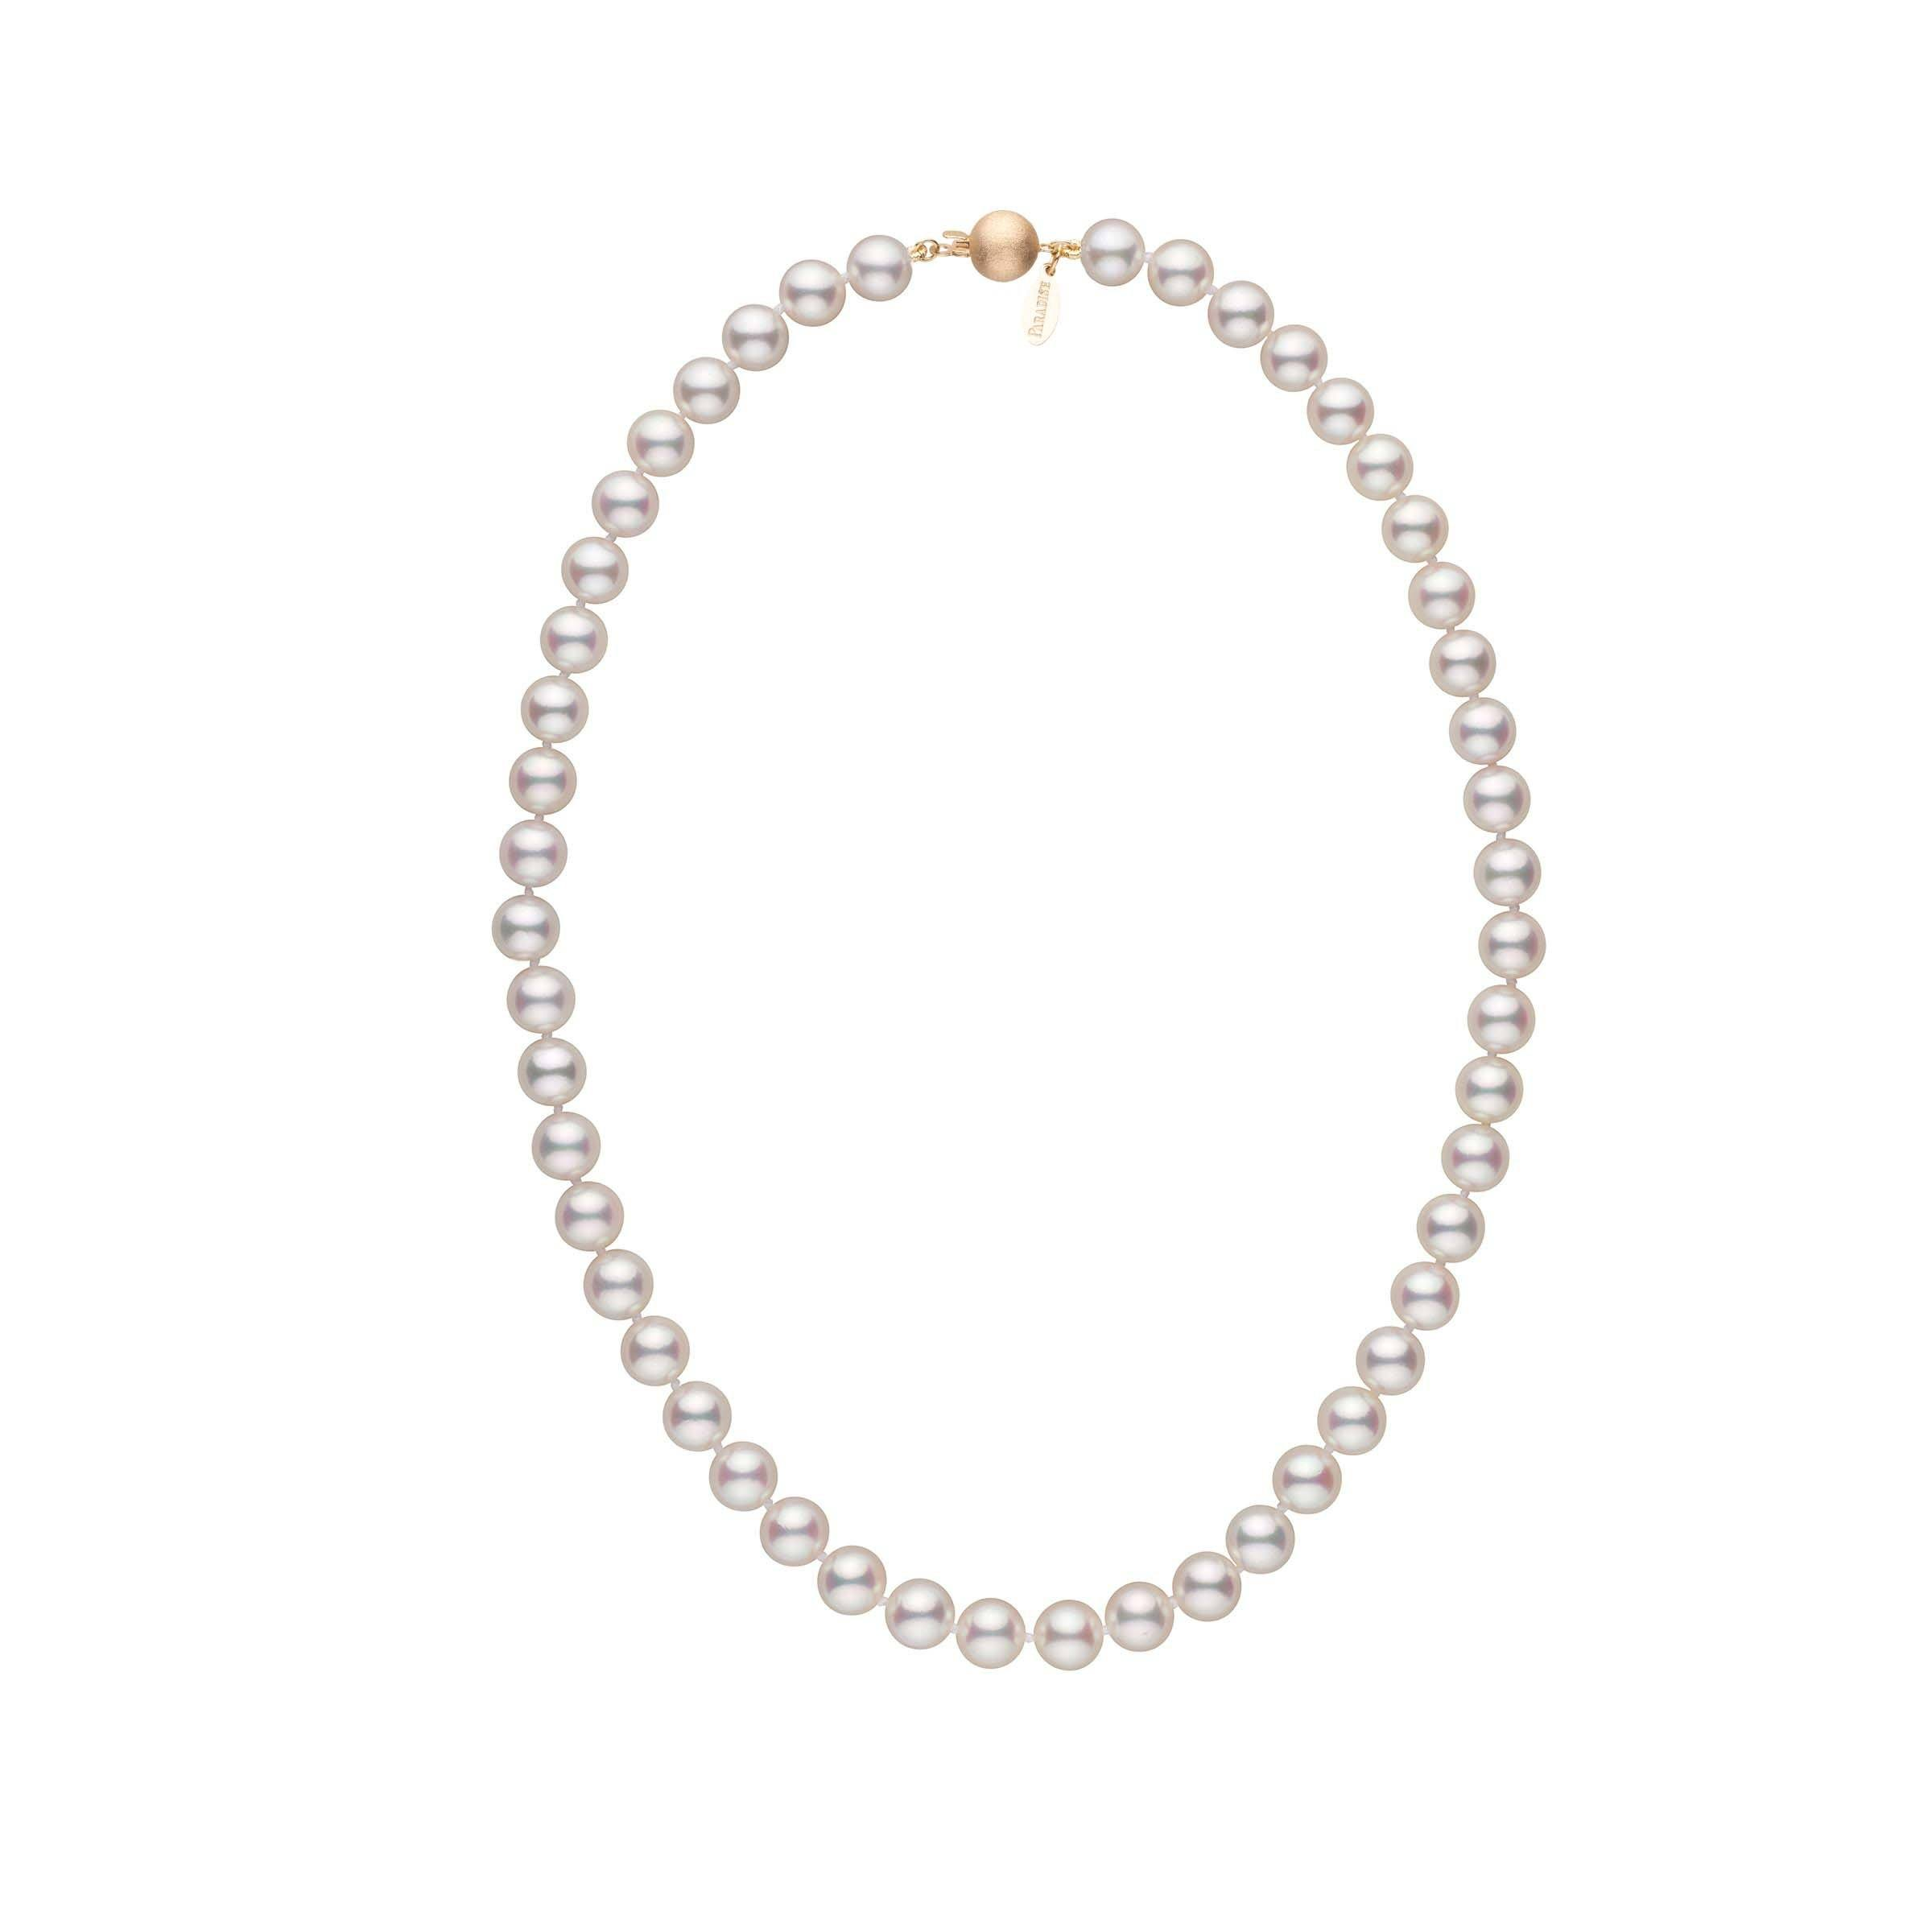 7.5-8.0 mm 16 Inch White Hanadama Akoya Pearl Necklace